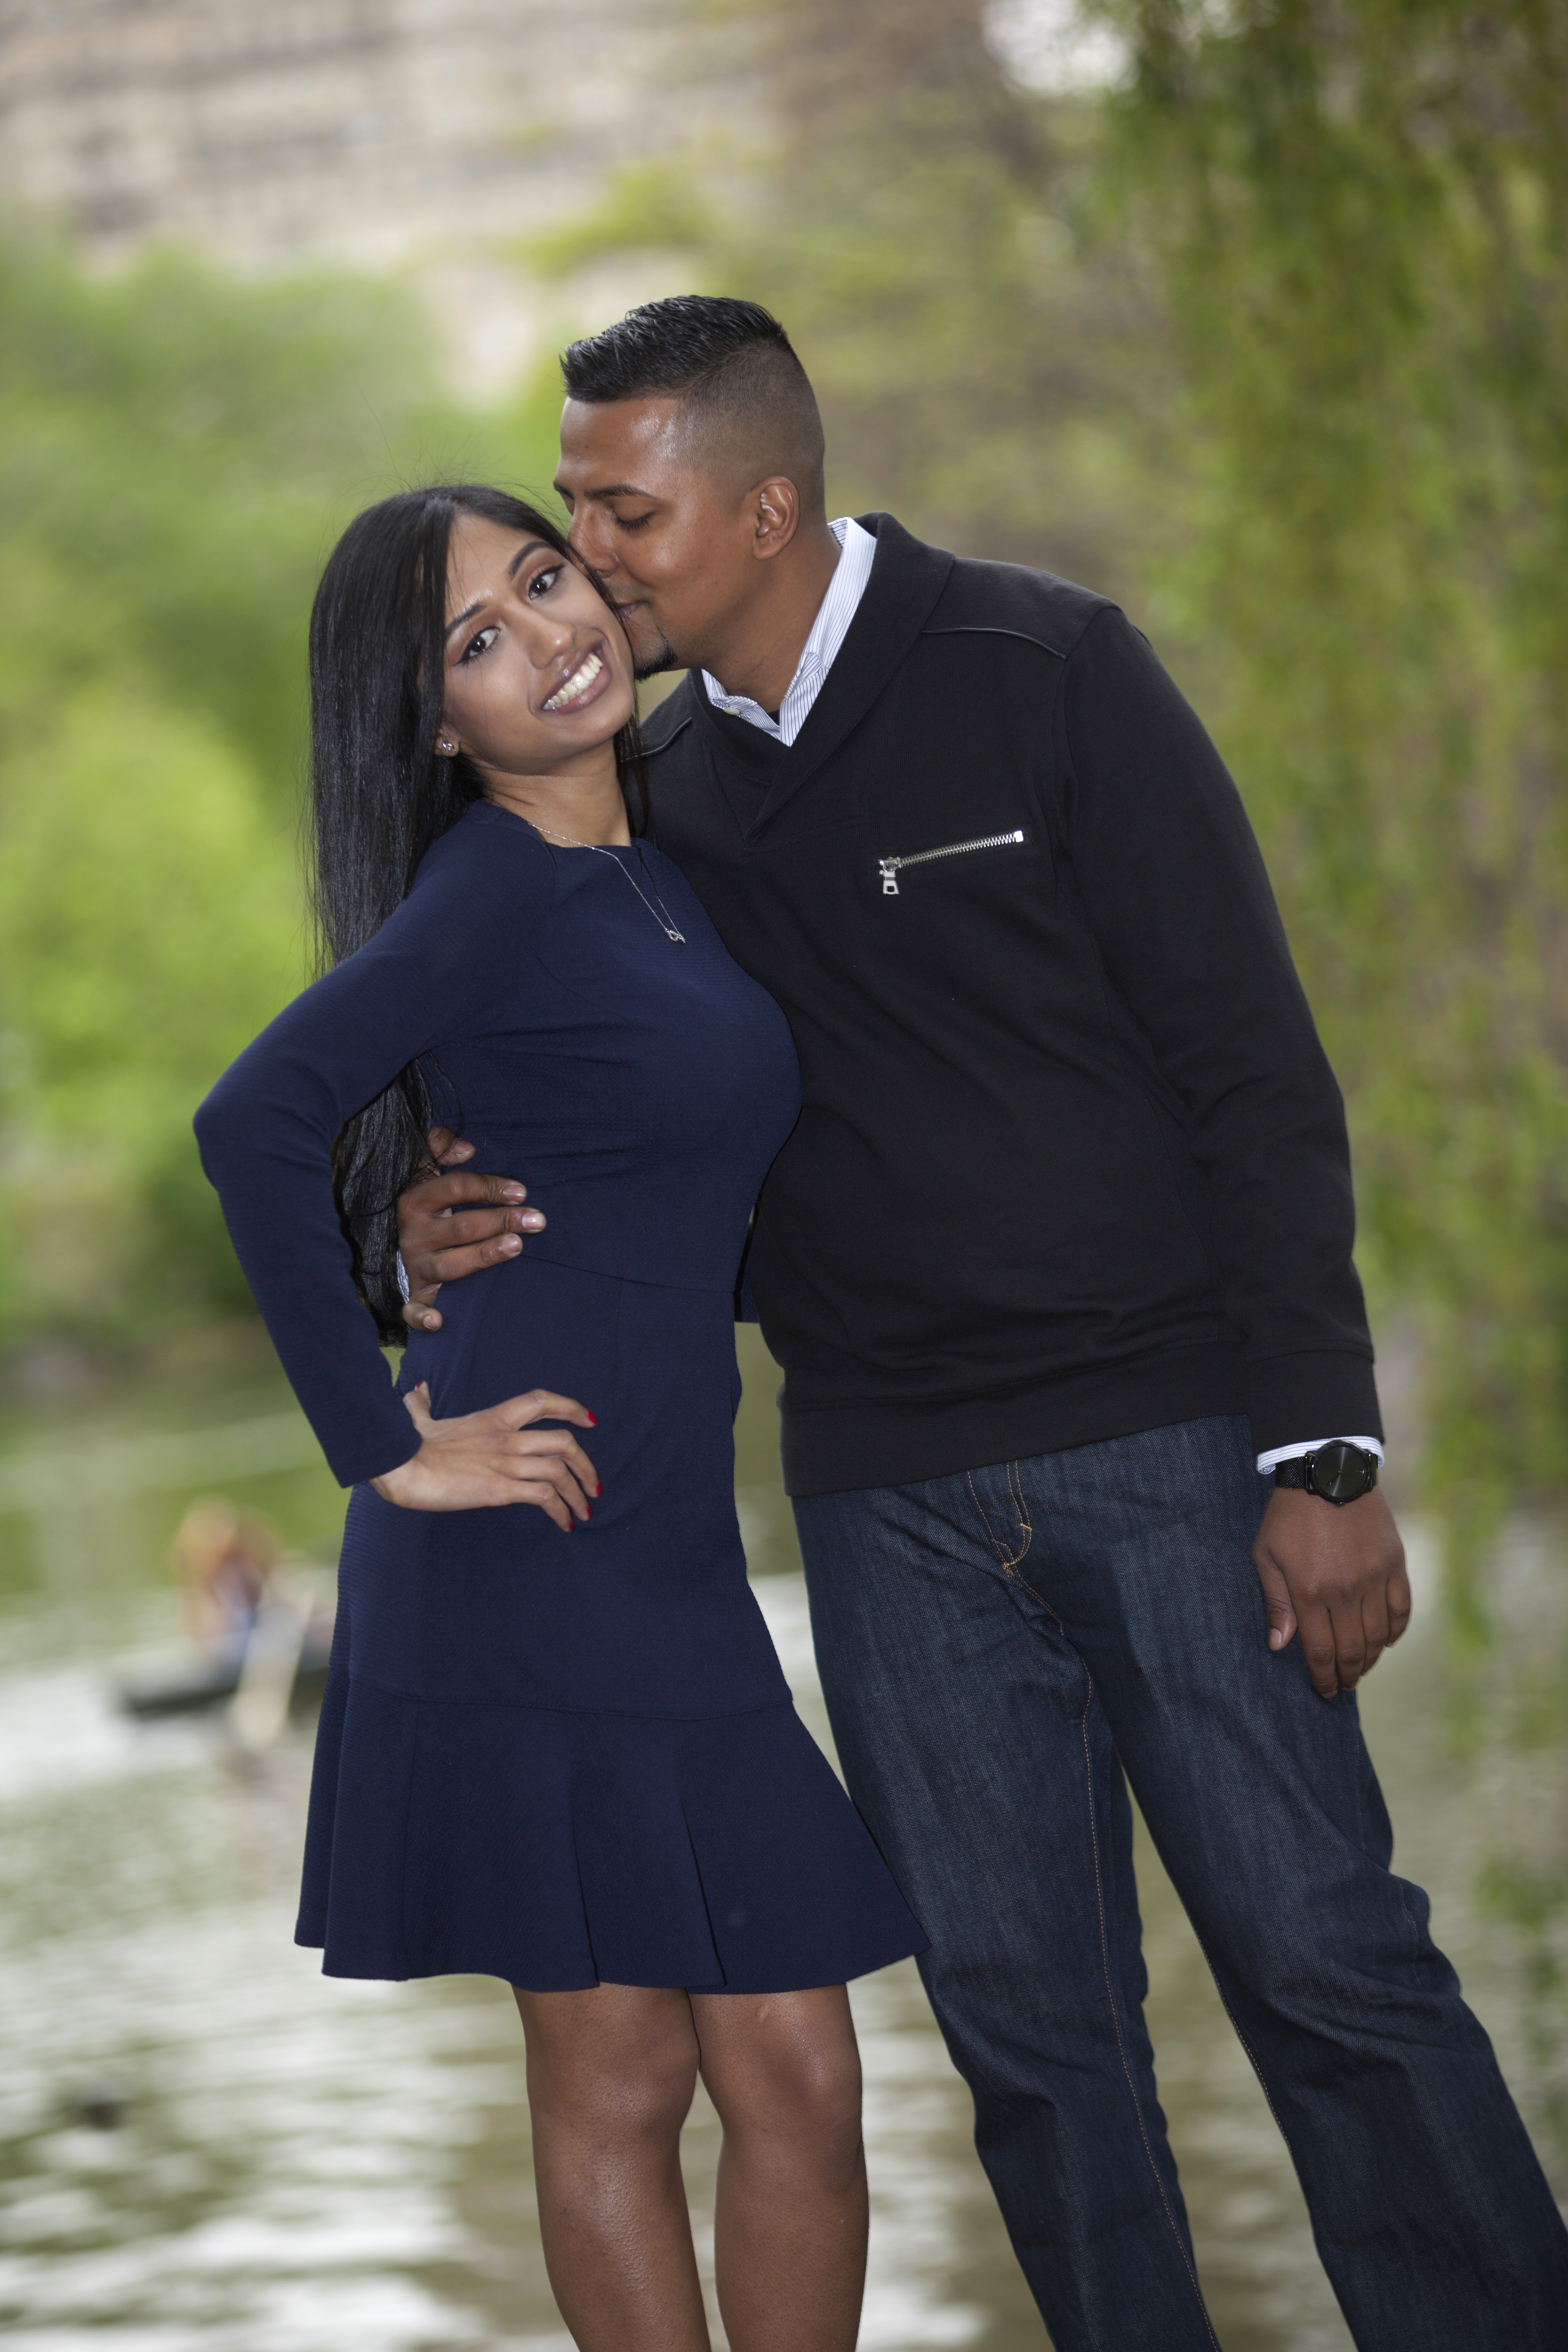 A New York Engagement Shoot, Priya and Adrian